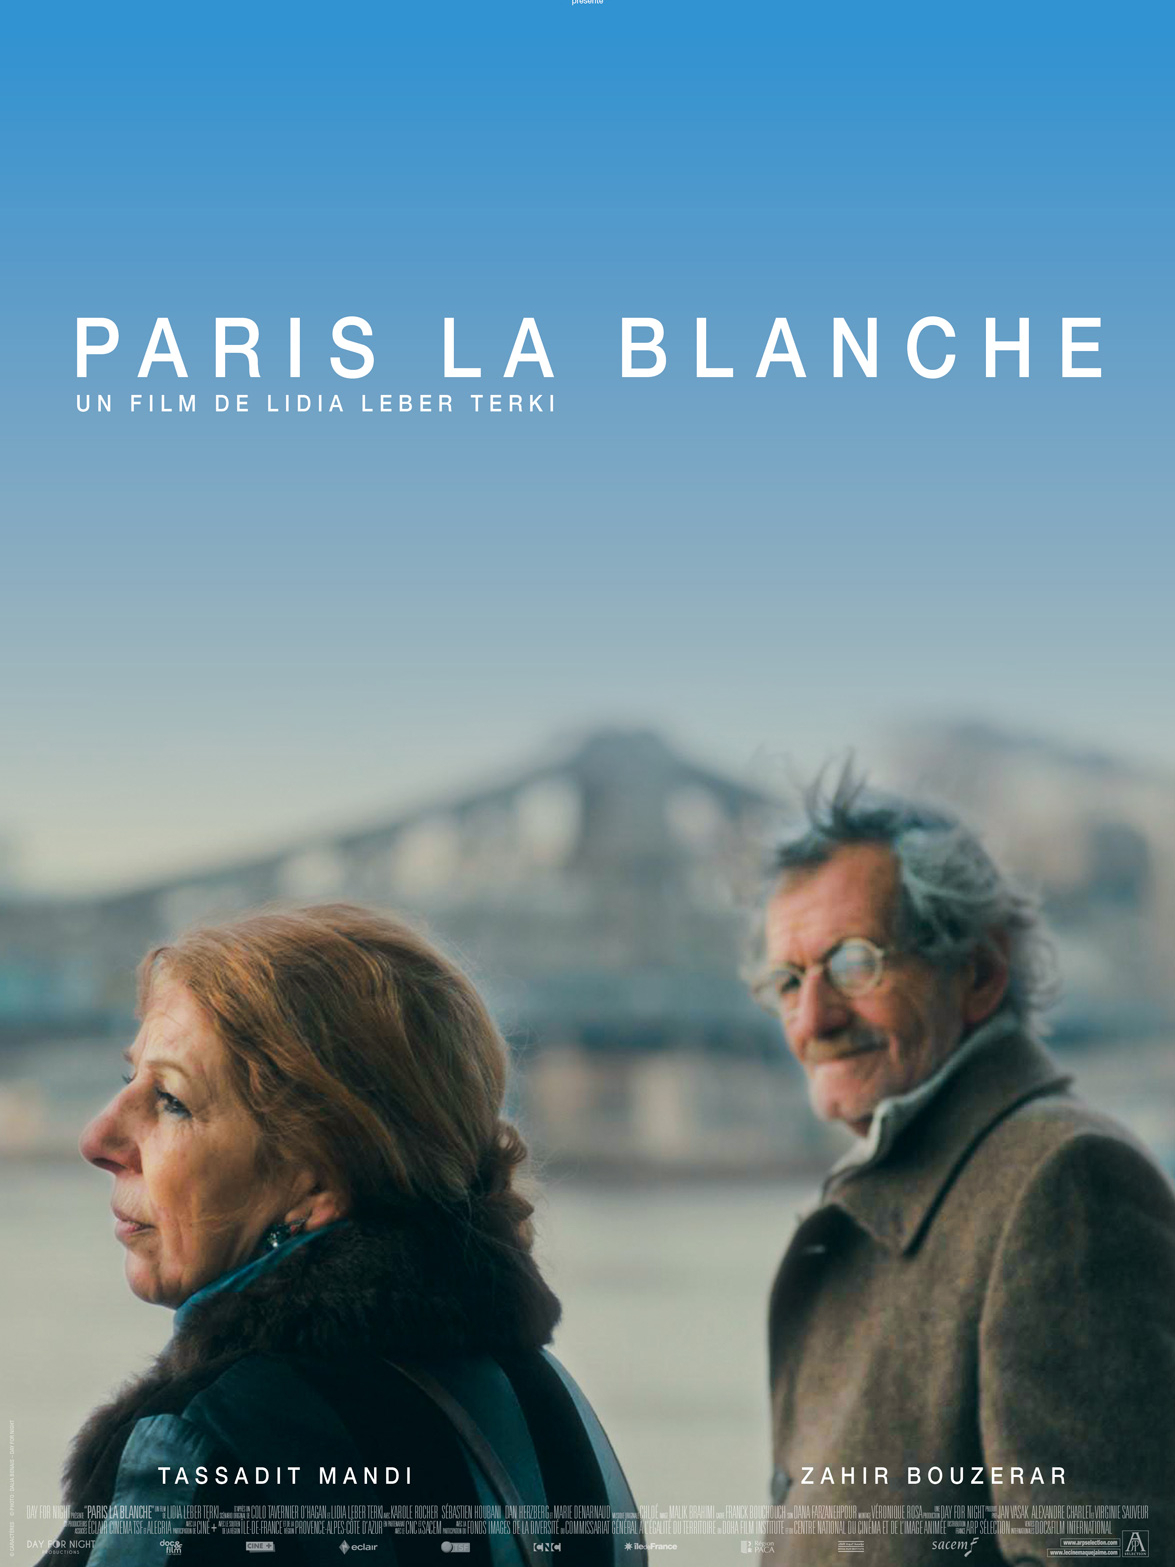 Paris la blanche |